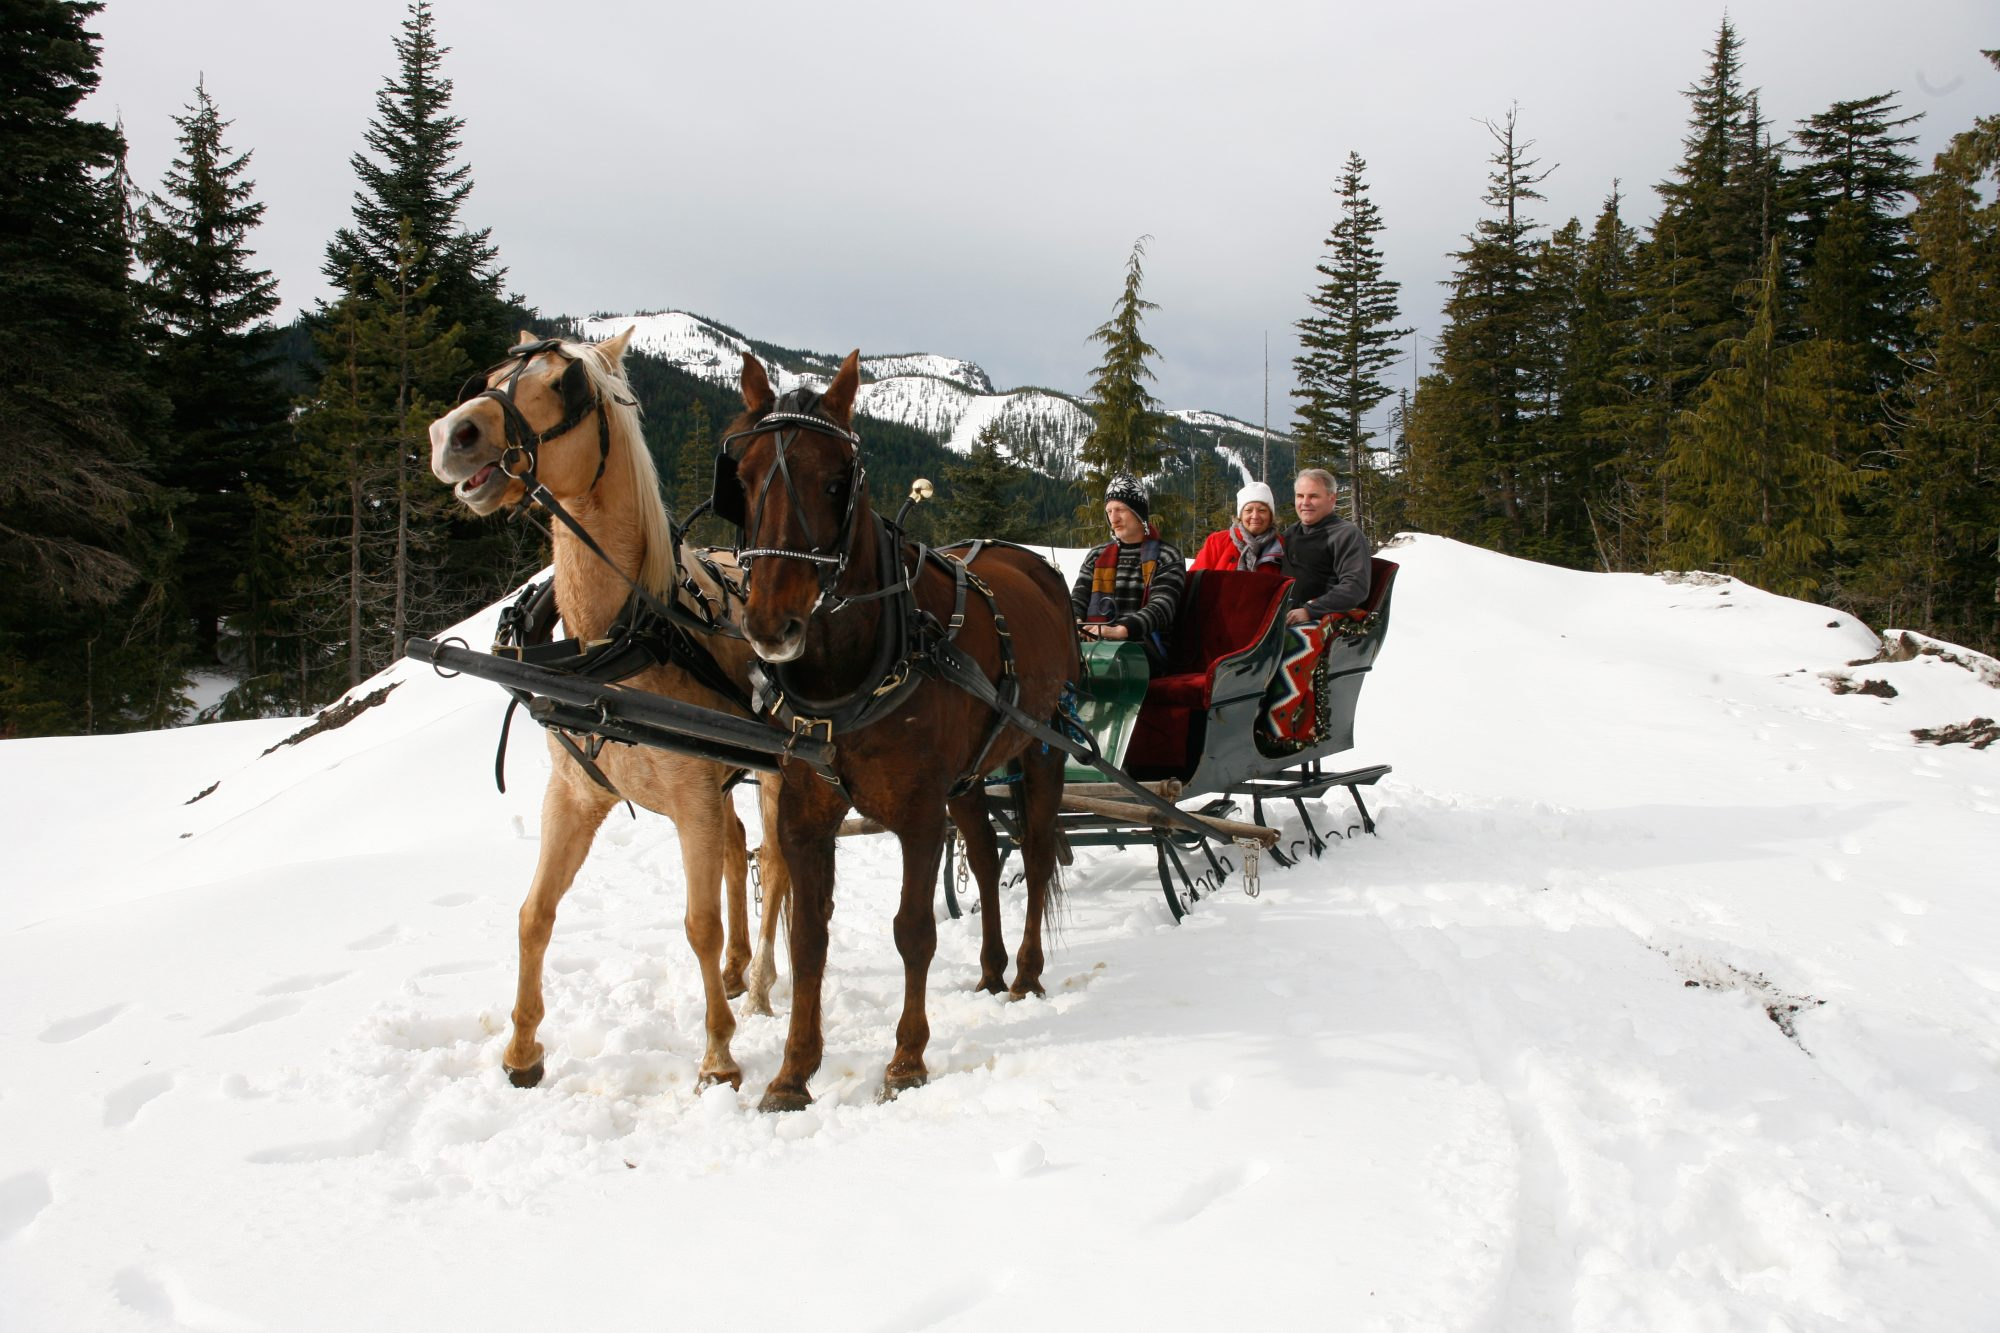 sleigh ride in the snow